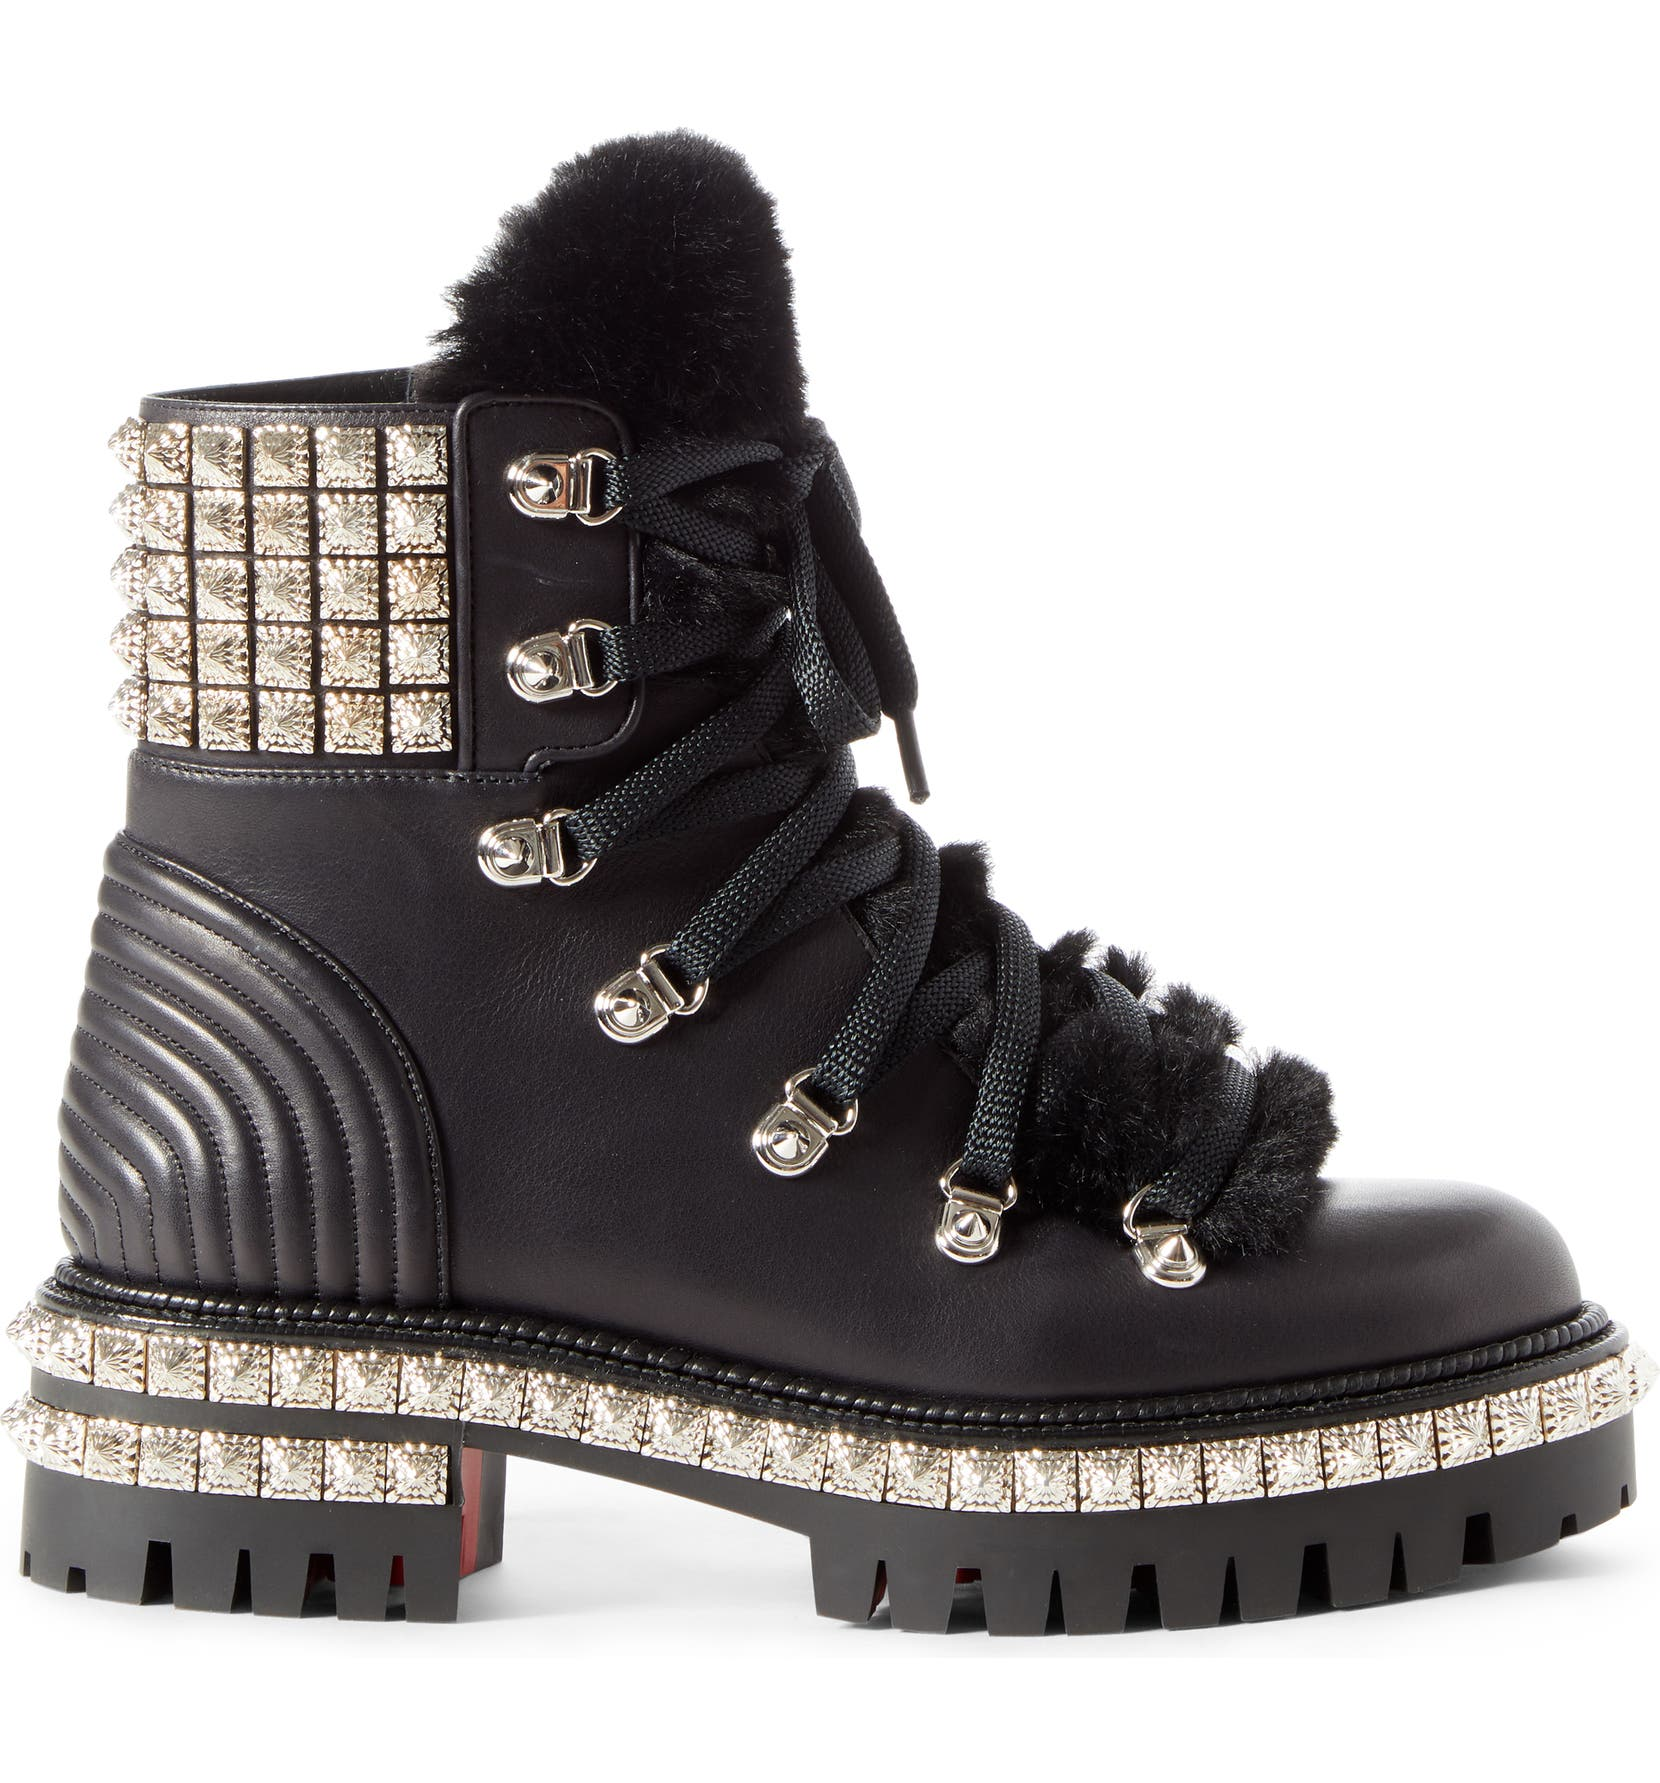 9c1677beb18 Christian Louboutin Yeti Studded Hiking Boot with Faux Fur Trim ...